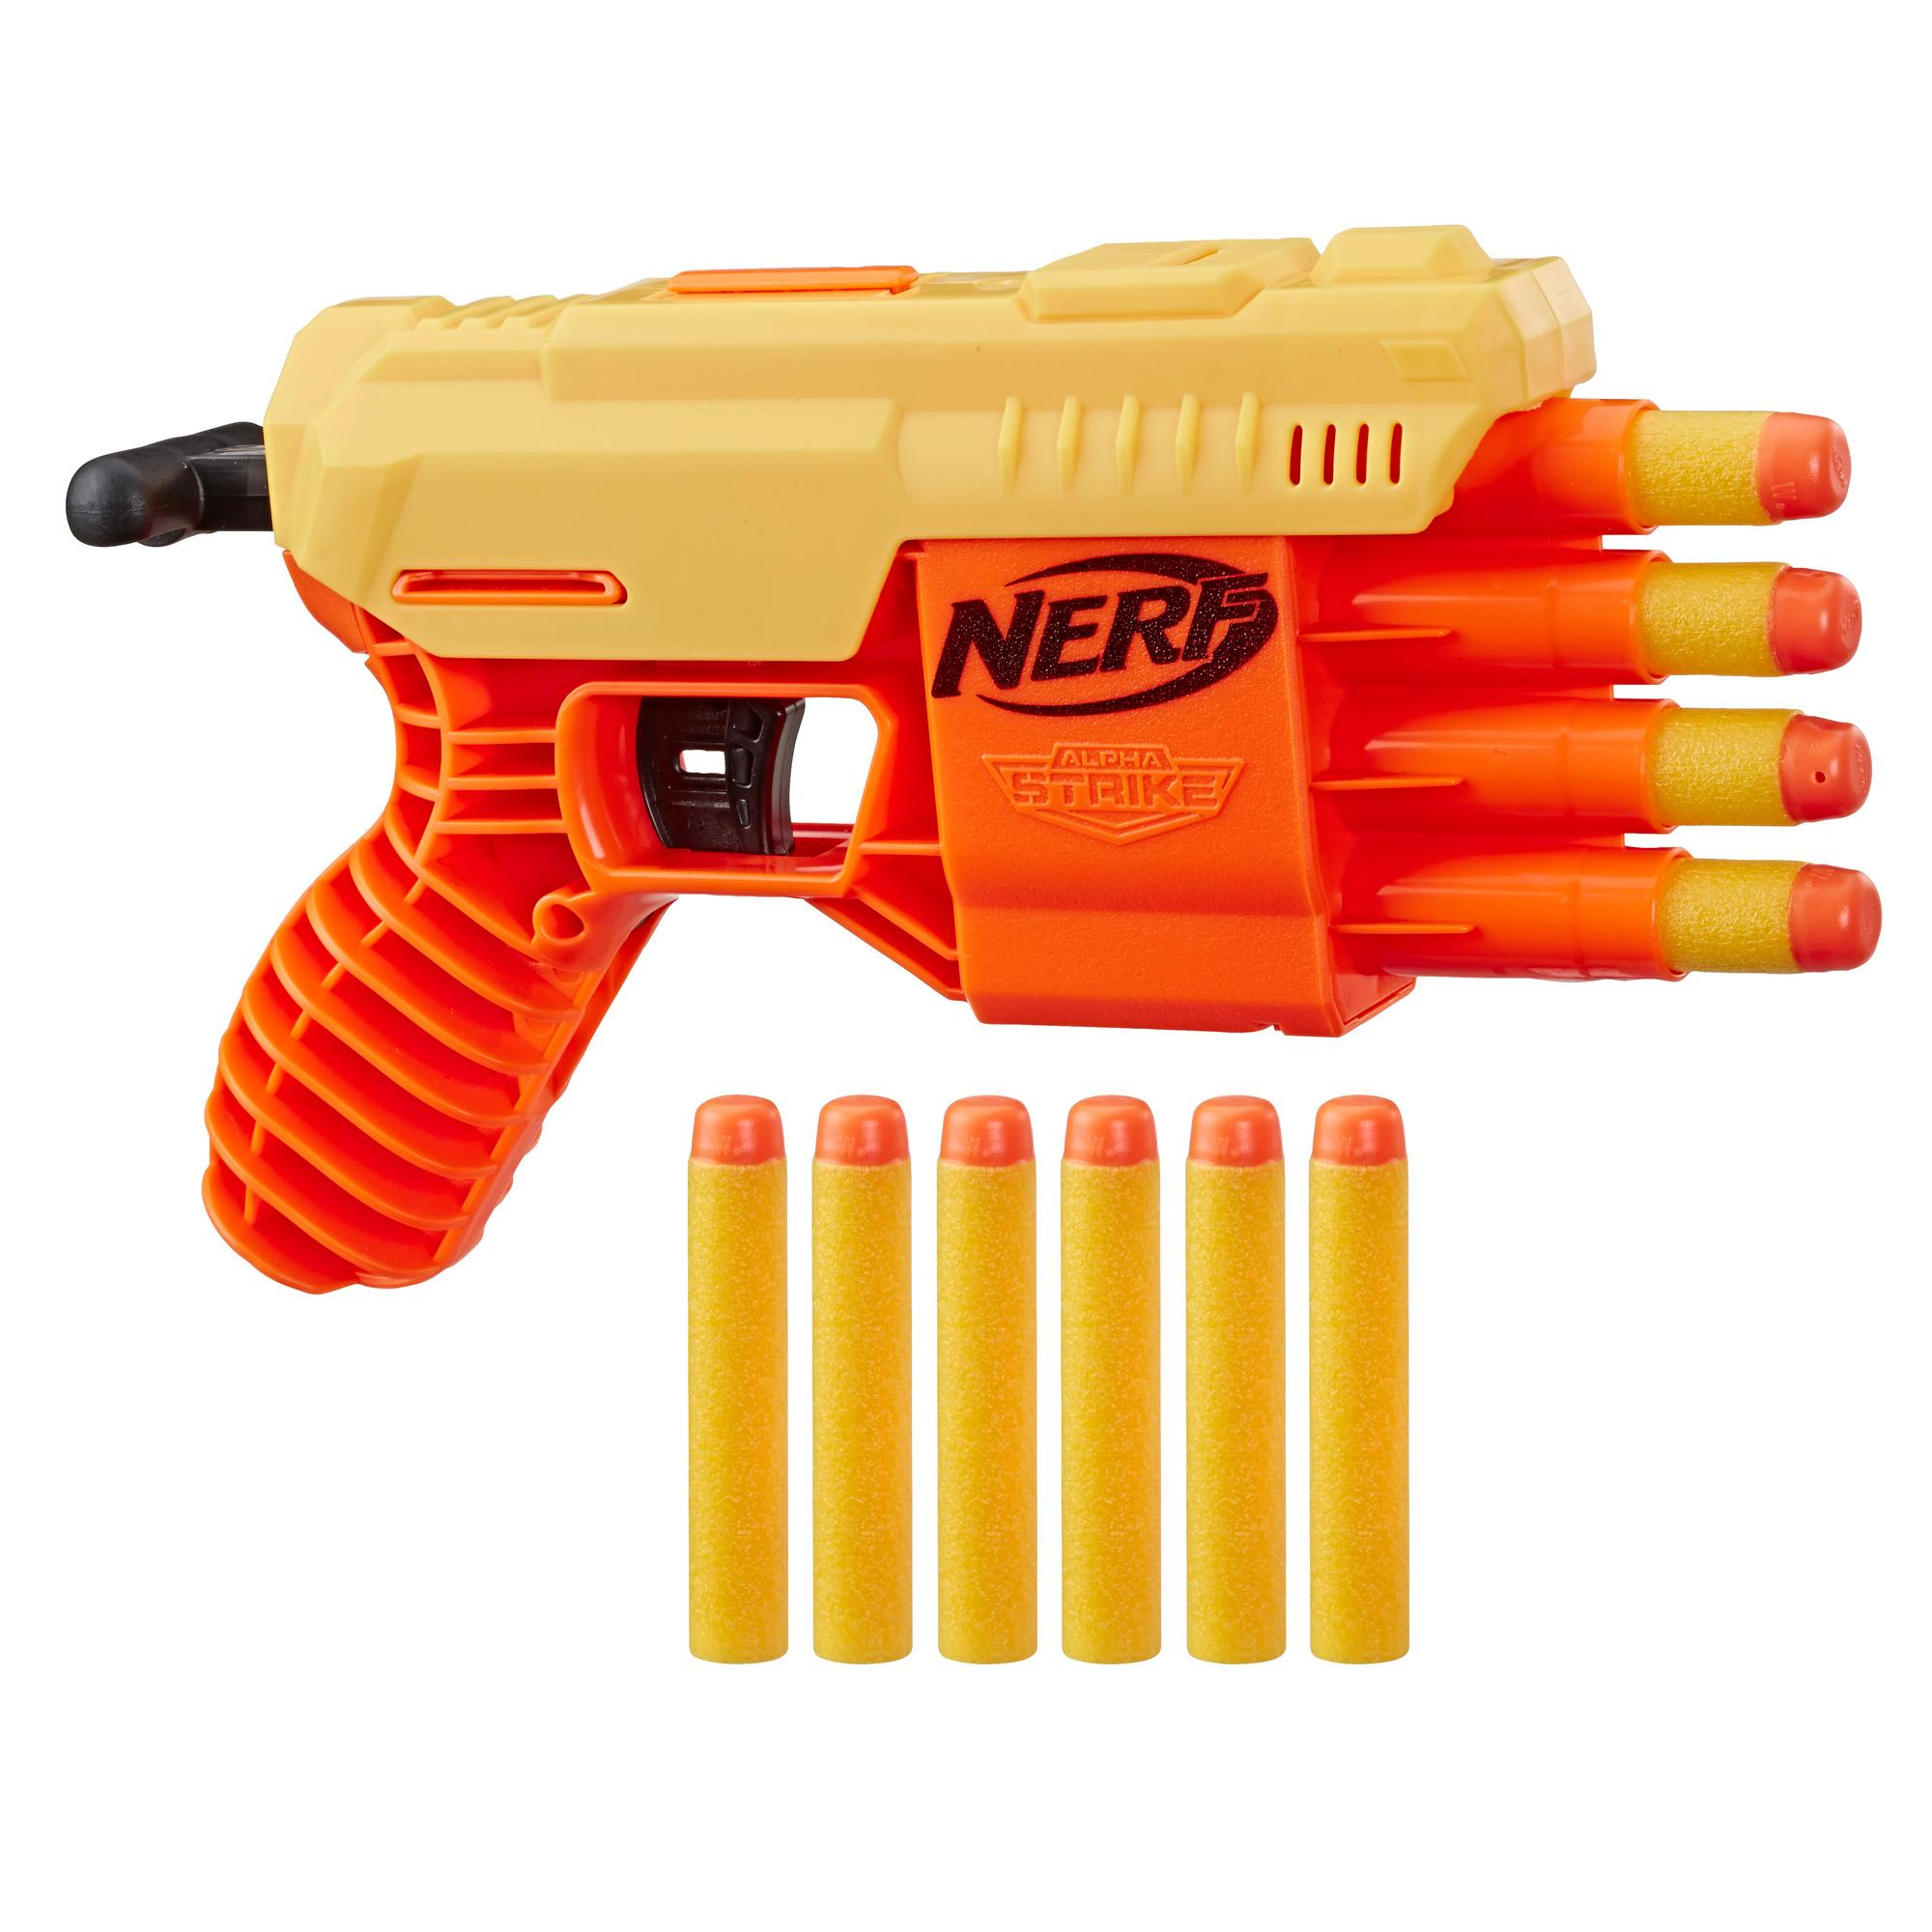 Fang QS-4 Nerf Alpha Strike Toy Blaster